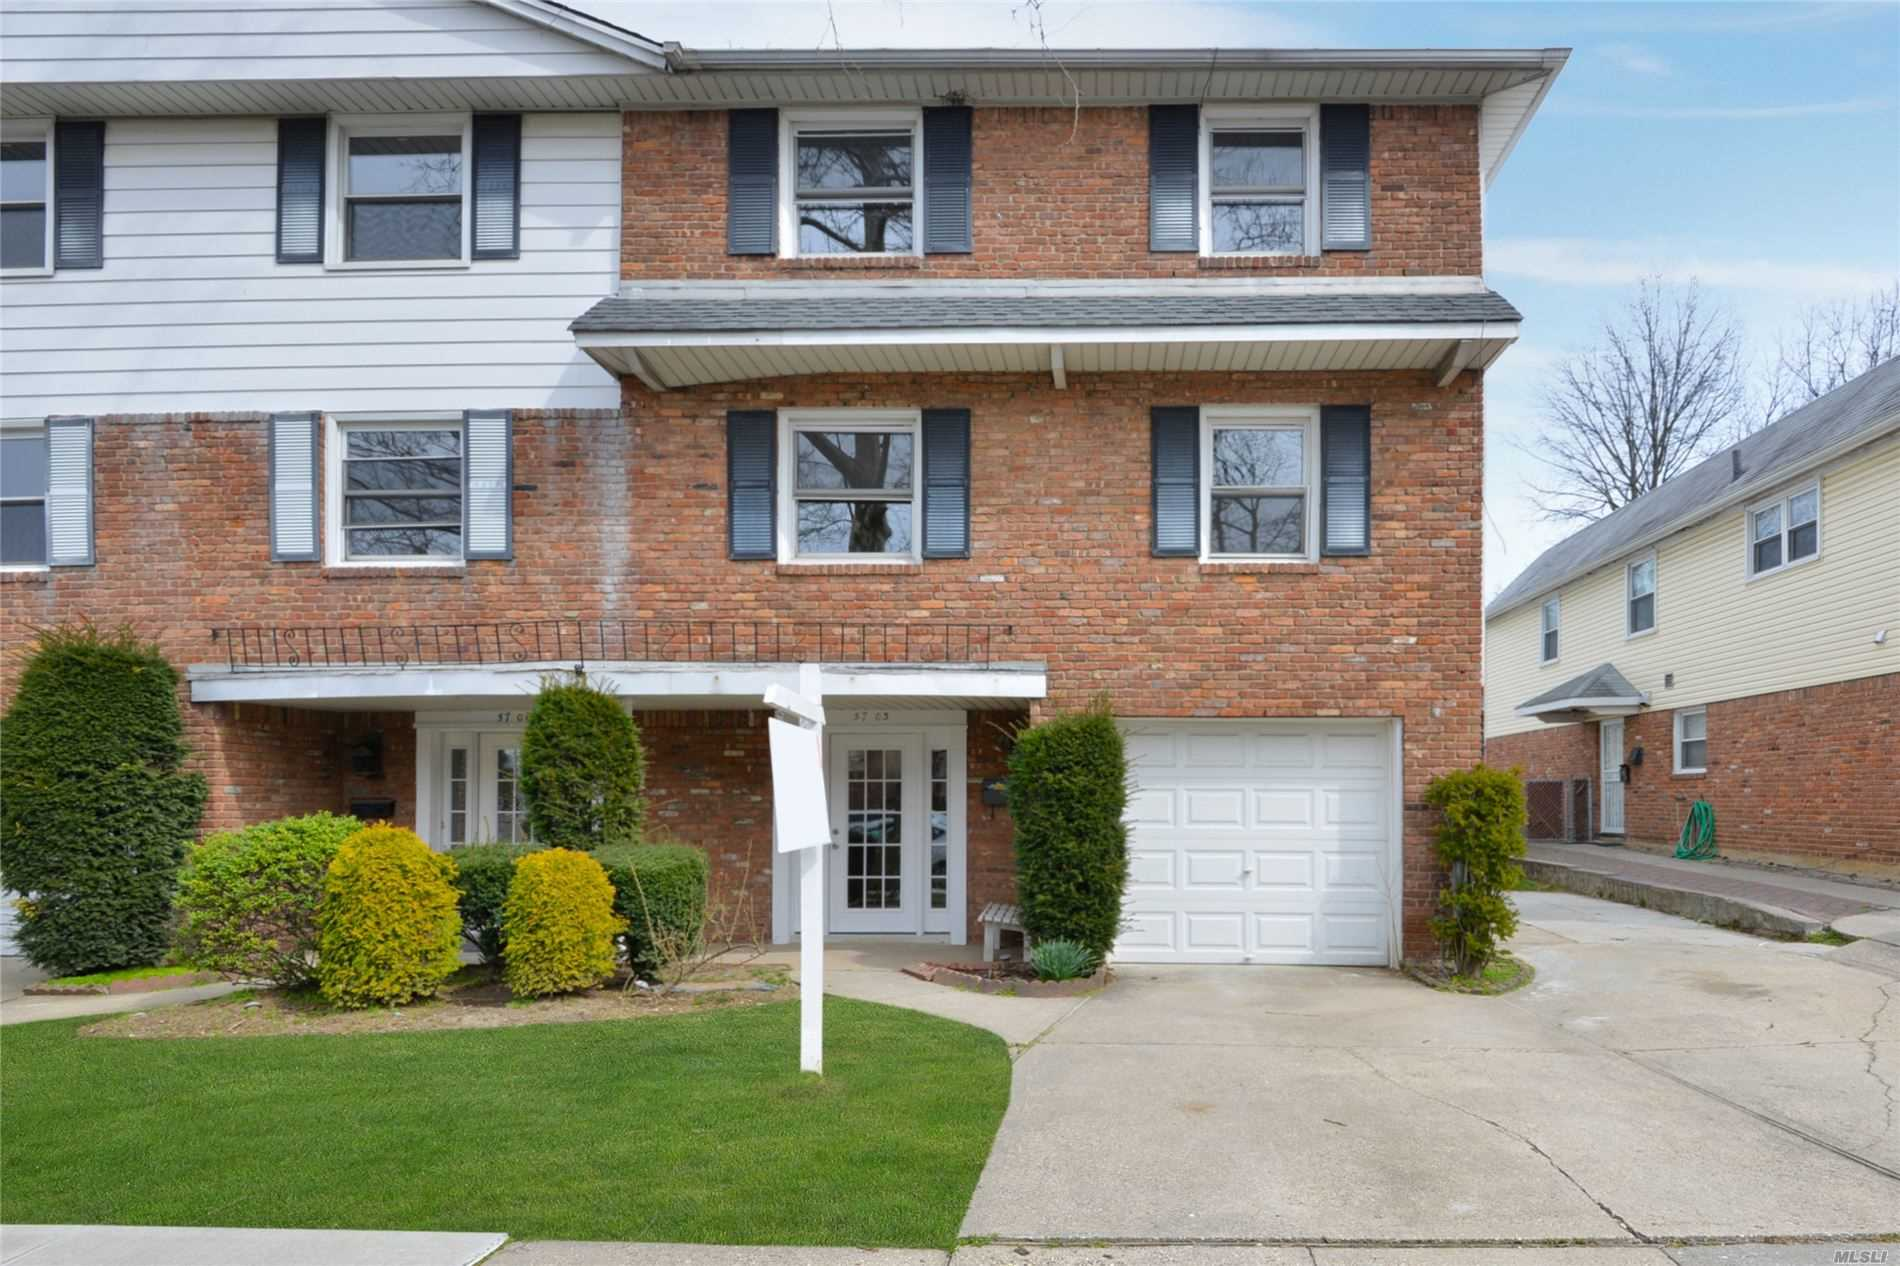 Property for sale at 57-03 225 Street, Bayside,  New York 11364